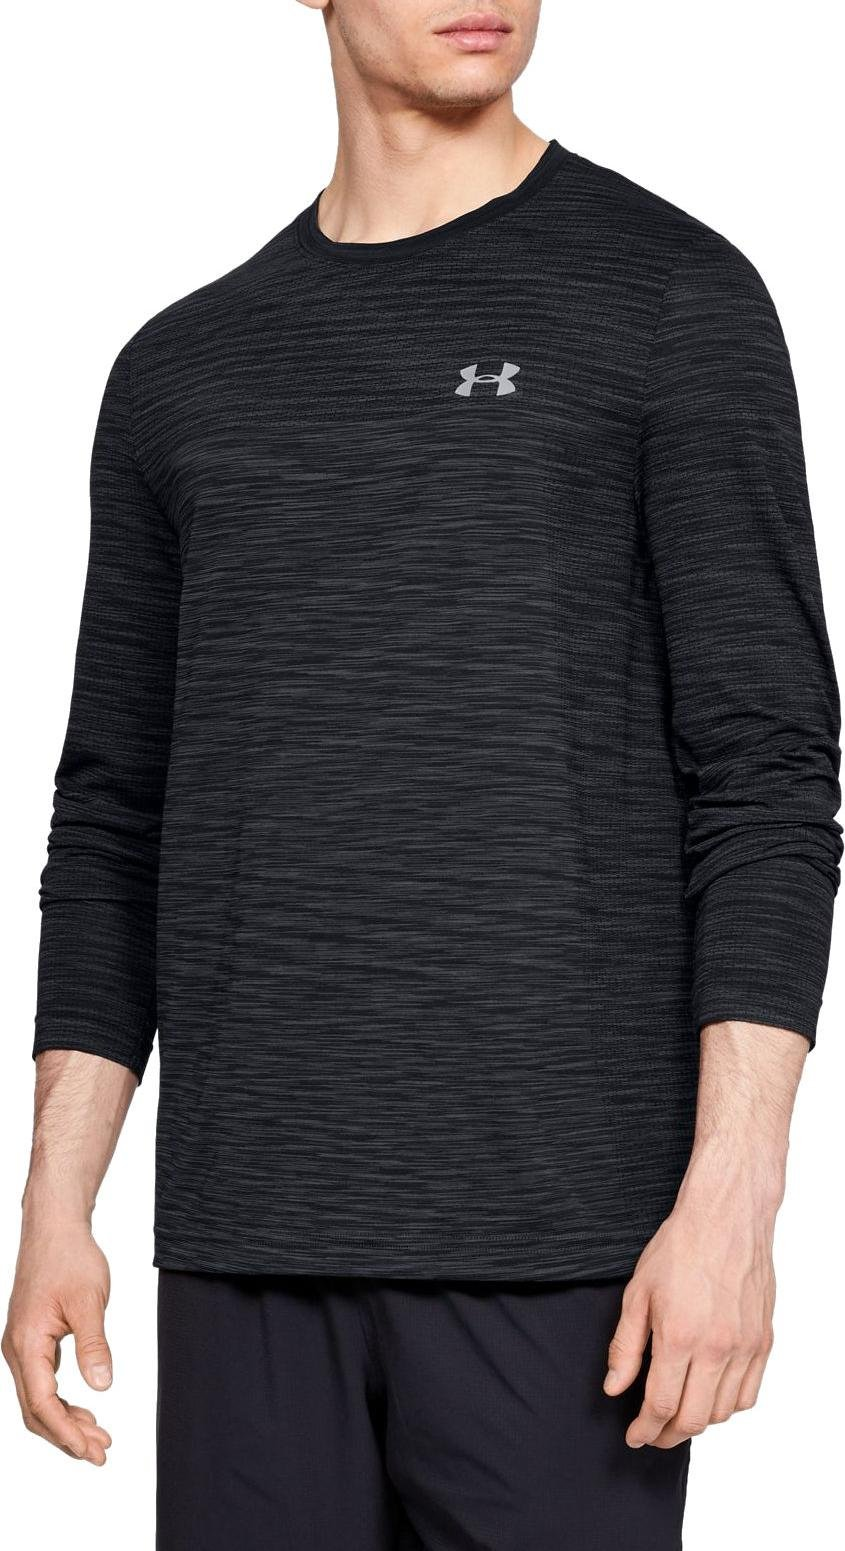 Tricou cu maneca lunga Under Armour Vanish Seamless LS